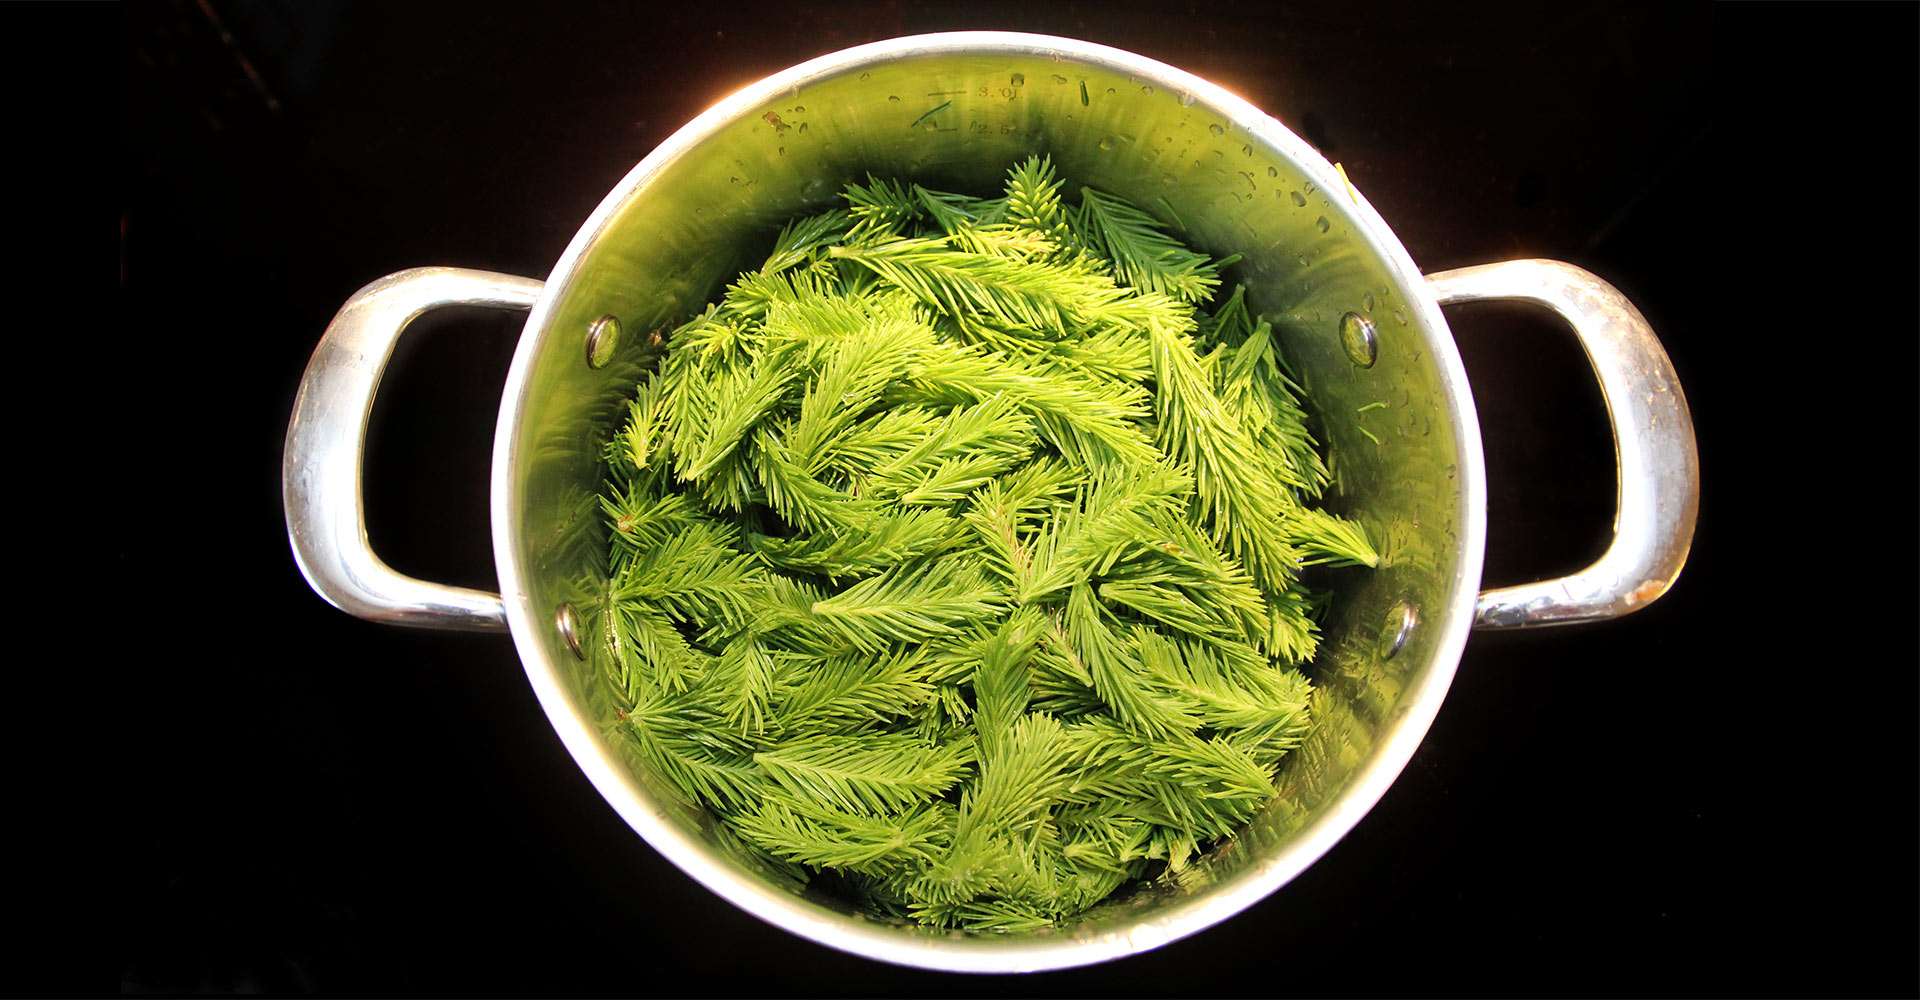 A picture of a kettle of spruce tips on a black background